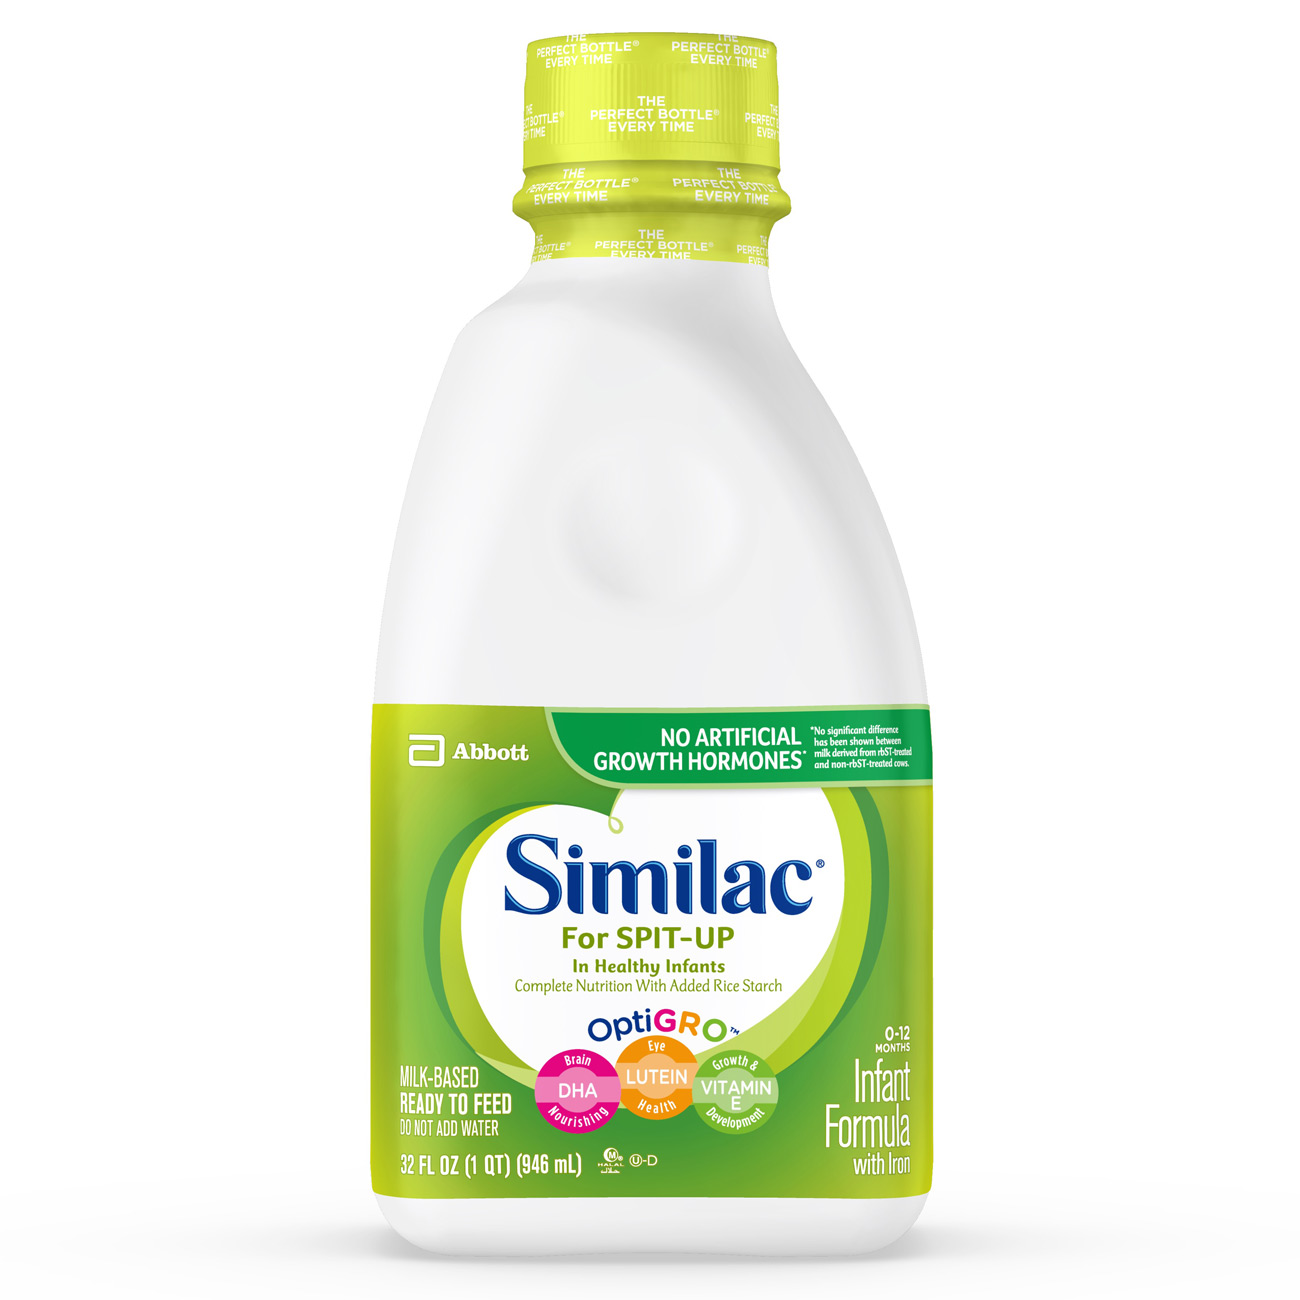 Similac For Spit-Up NON-GMO Infant Formula with Iron, Ready-to-Feed, 1 qt